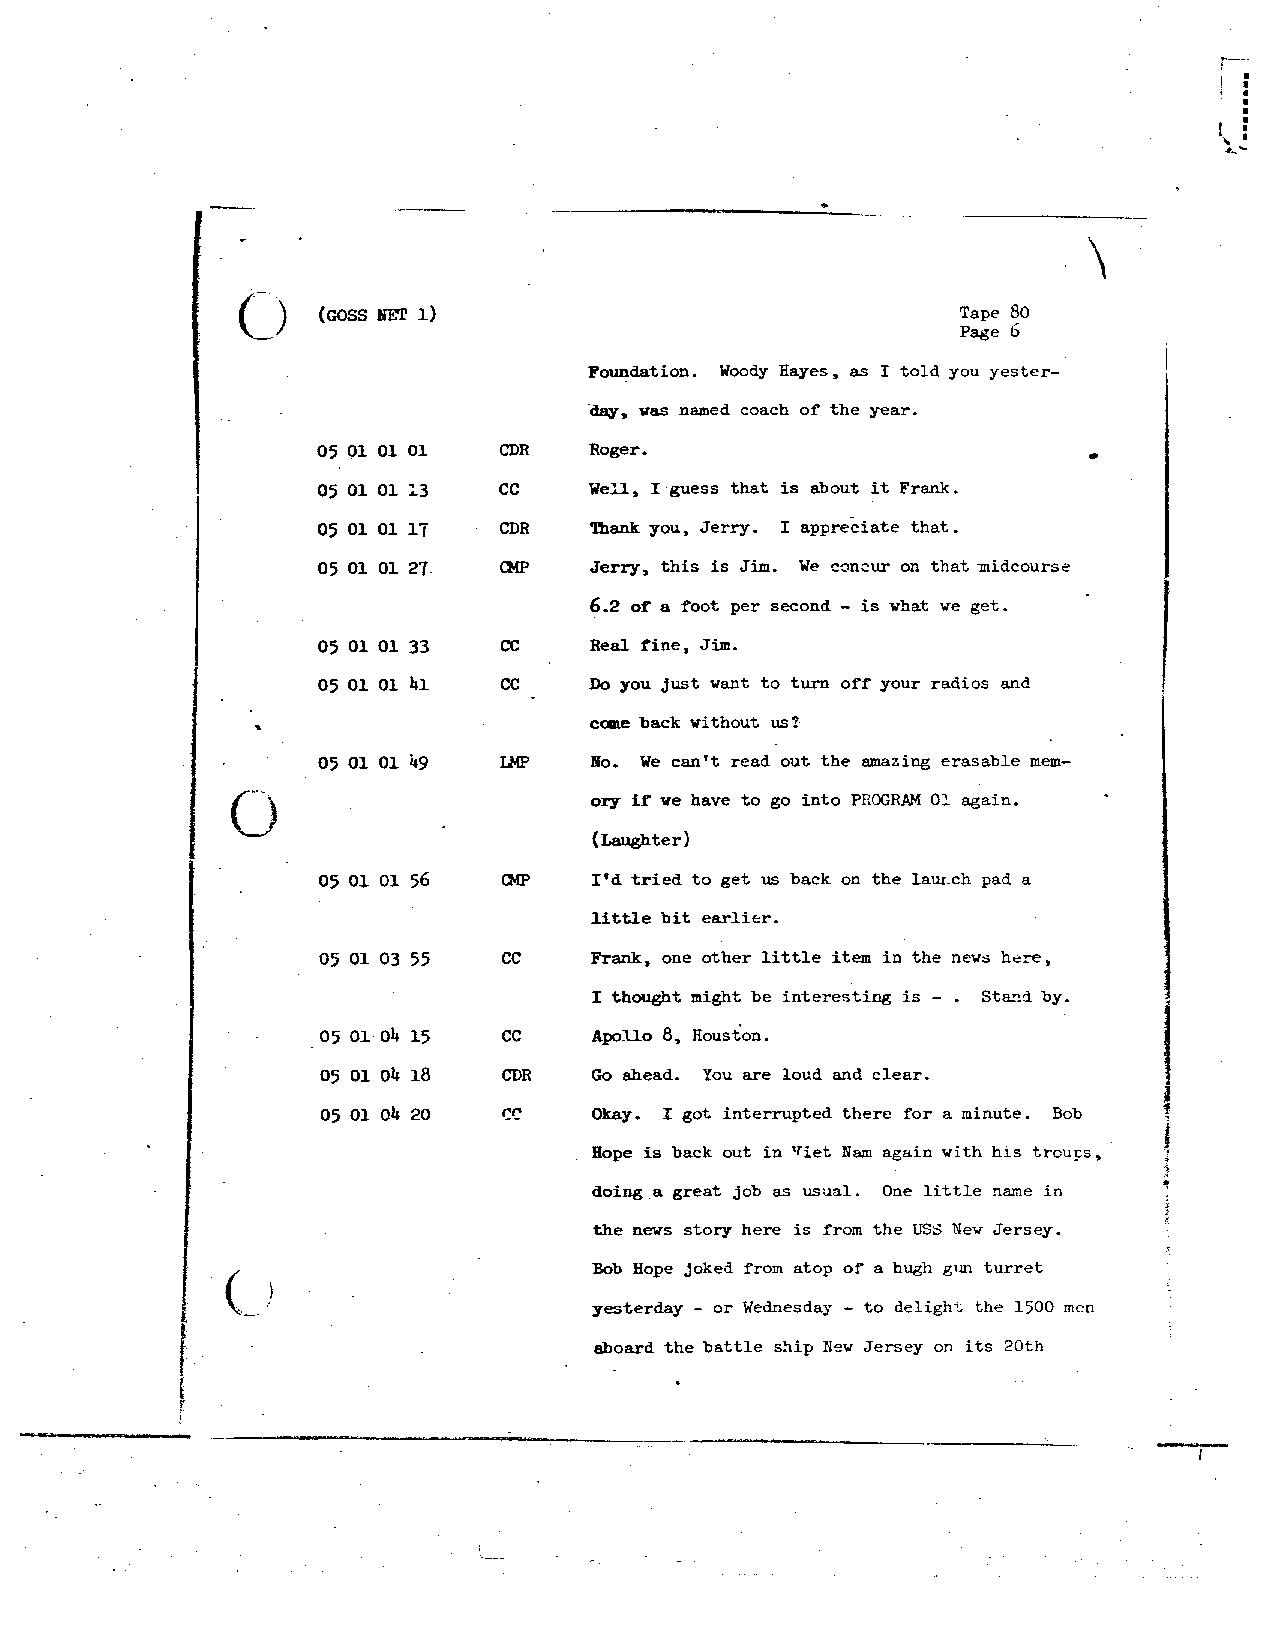 Page 663 of Apollo 8's original transcript